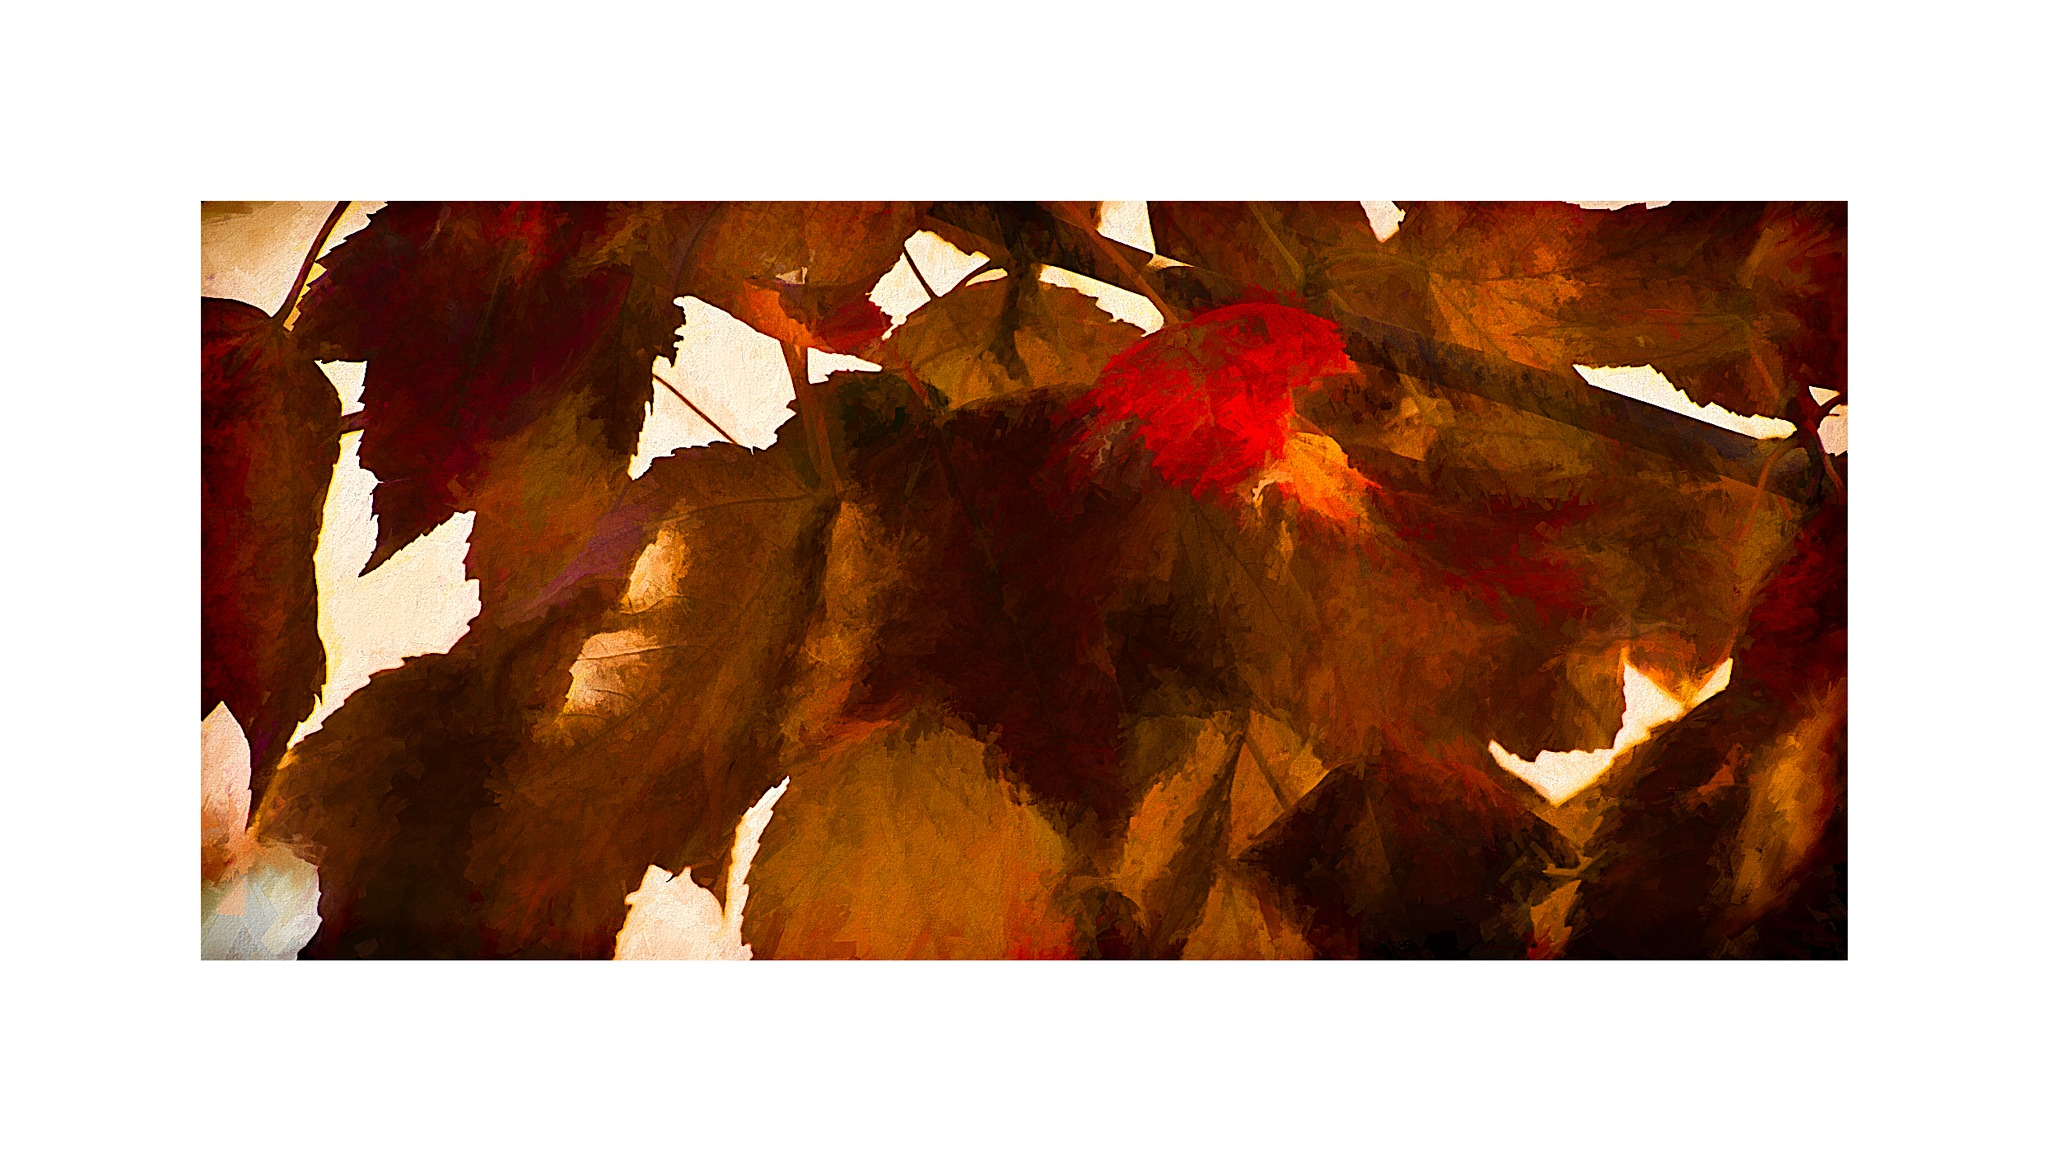 Autumn Statement 36 by JohnEllingson